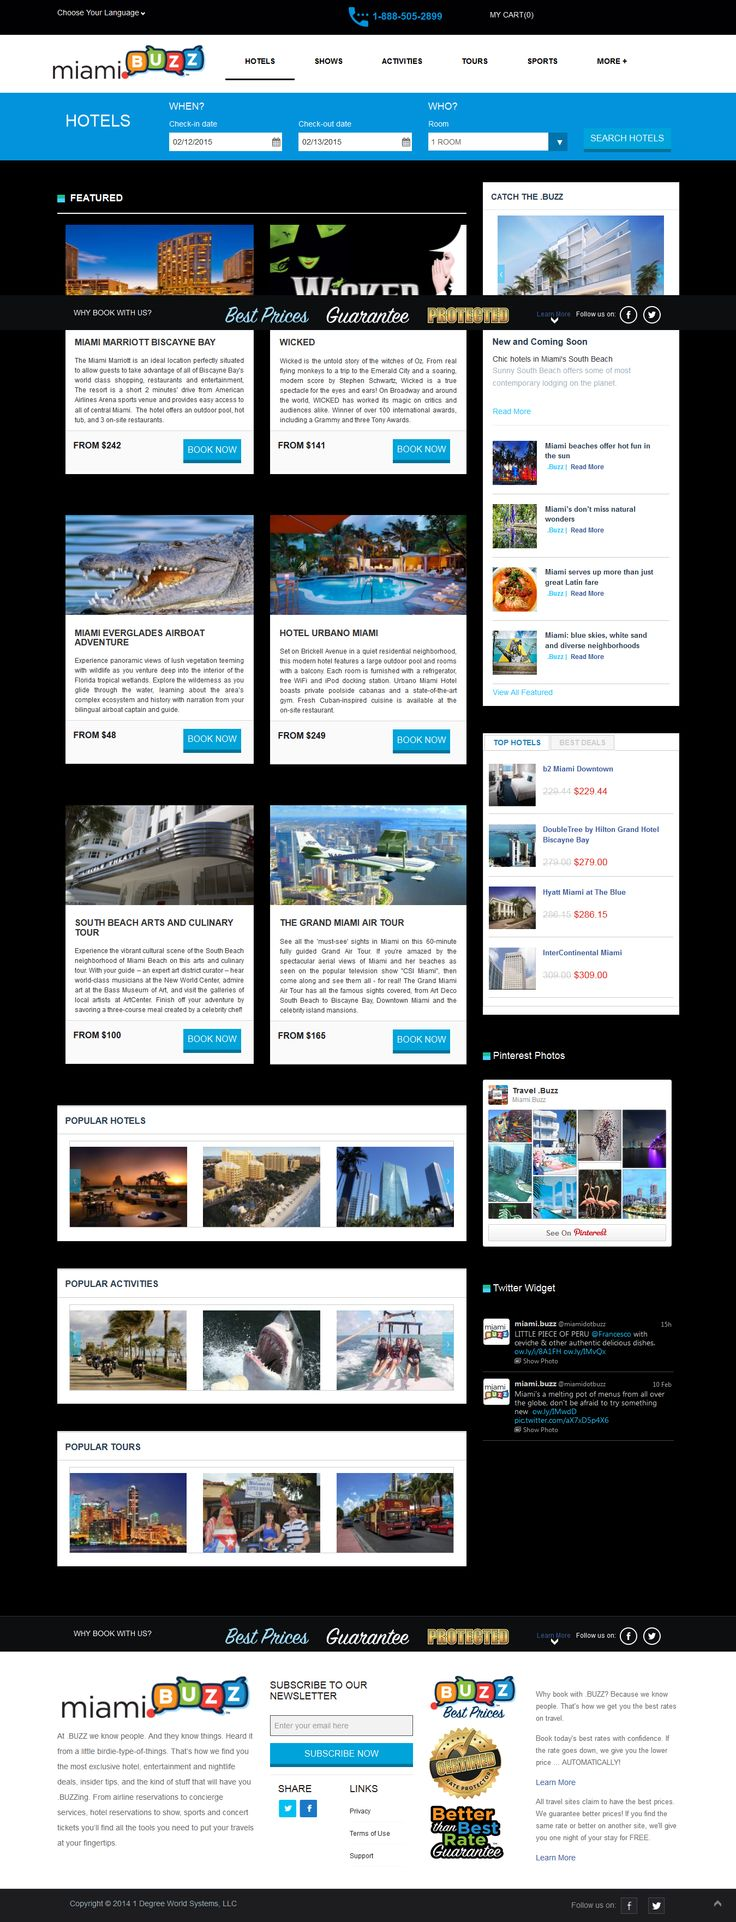 Miami.buzz - In Miami provides hotel reservations functions, luxury accommodations, entertainment, live events. flight tour, Miami tourism packages,  sports and concert tickets you'll find all the tools you need to put your travels at your fingertips.  http://vividinfotech.com/